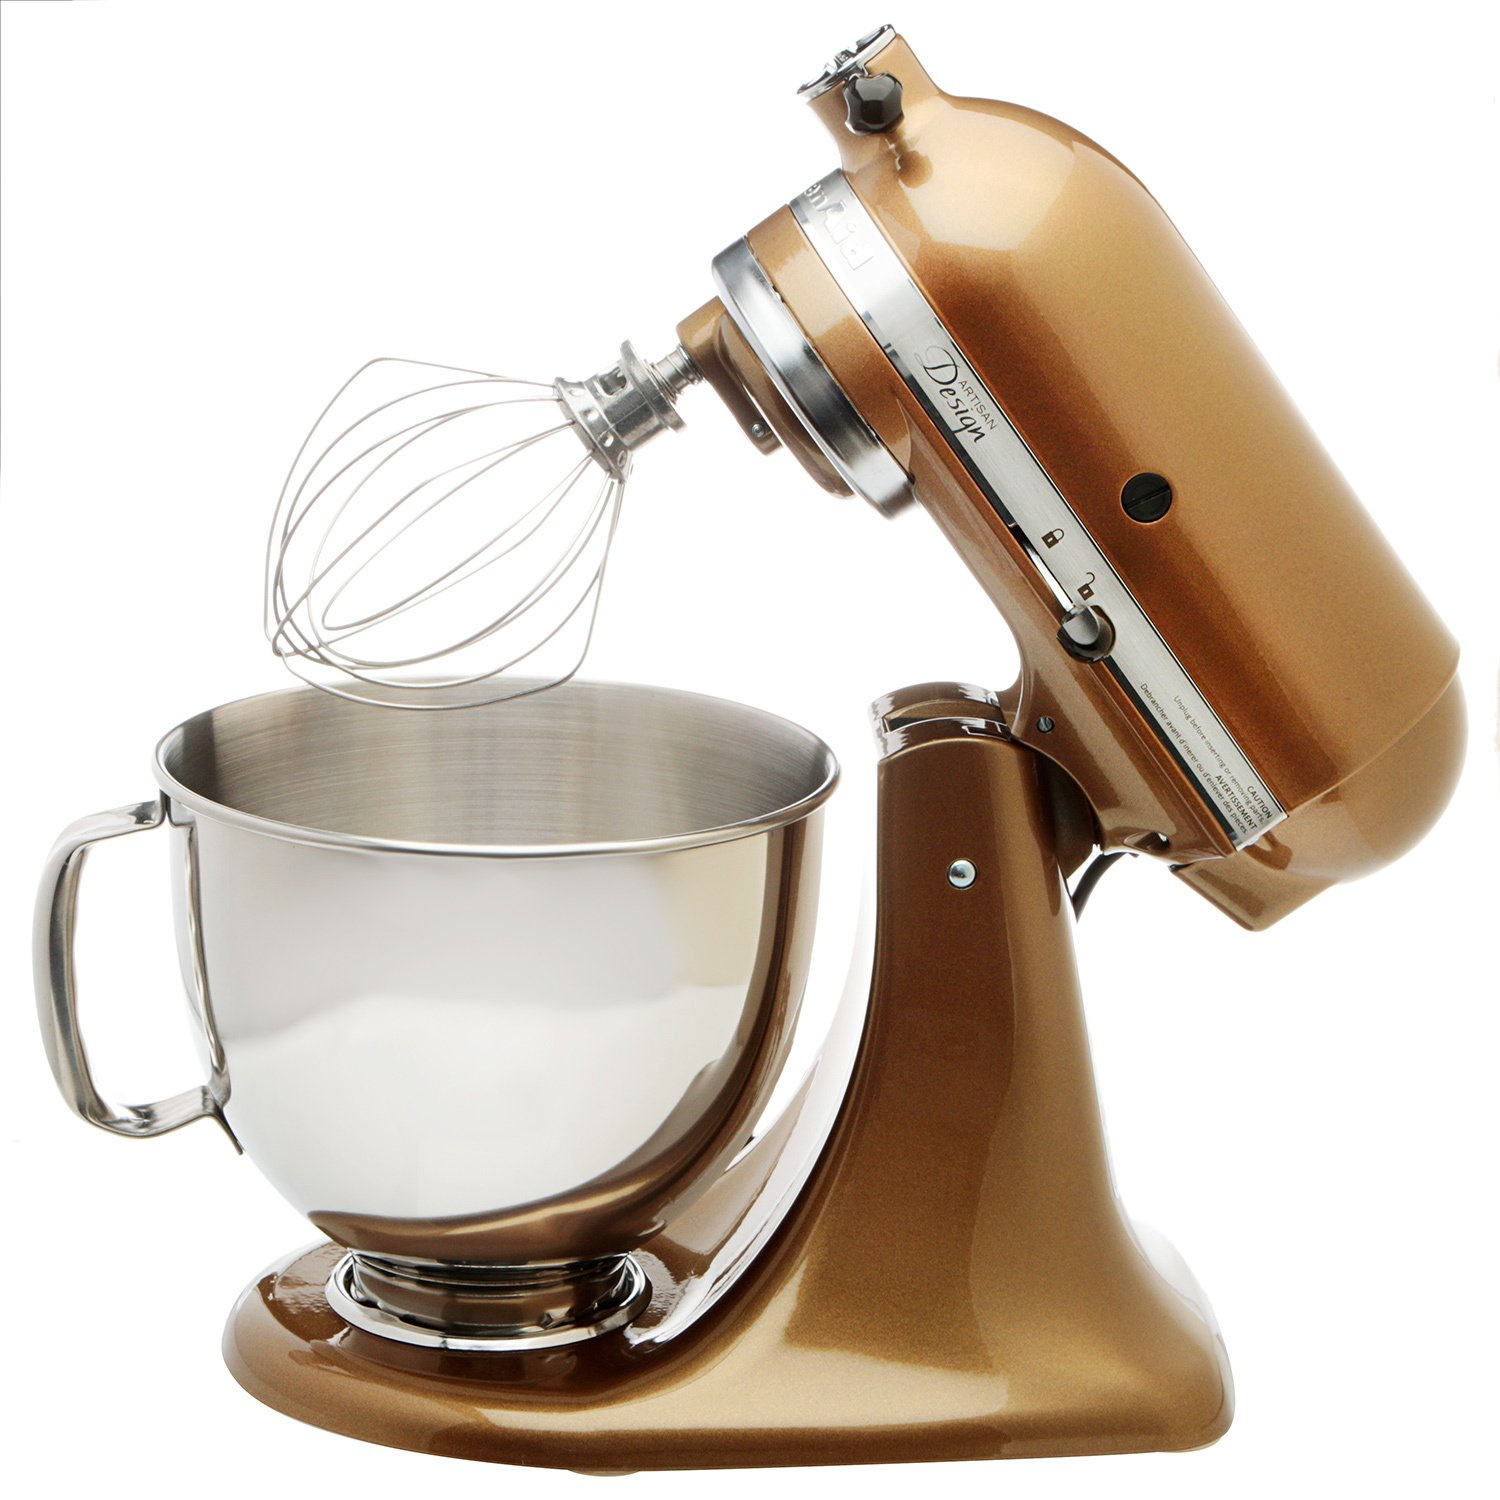 KitchenAid-Refurbished-Artisan-Series-5-Quart-Tilt-Head-Stand-Mixer-RRK150 thumbnail 84